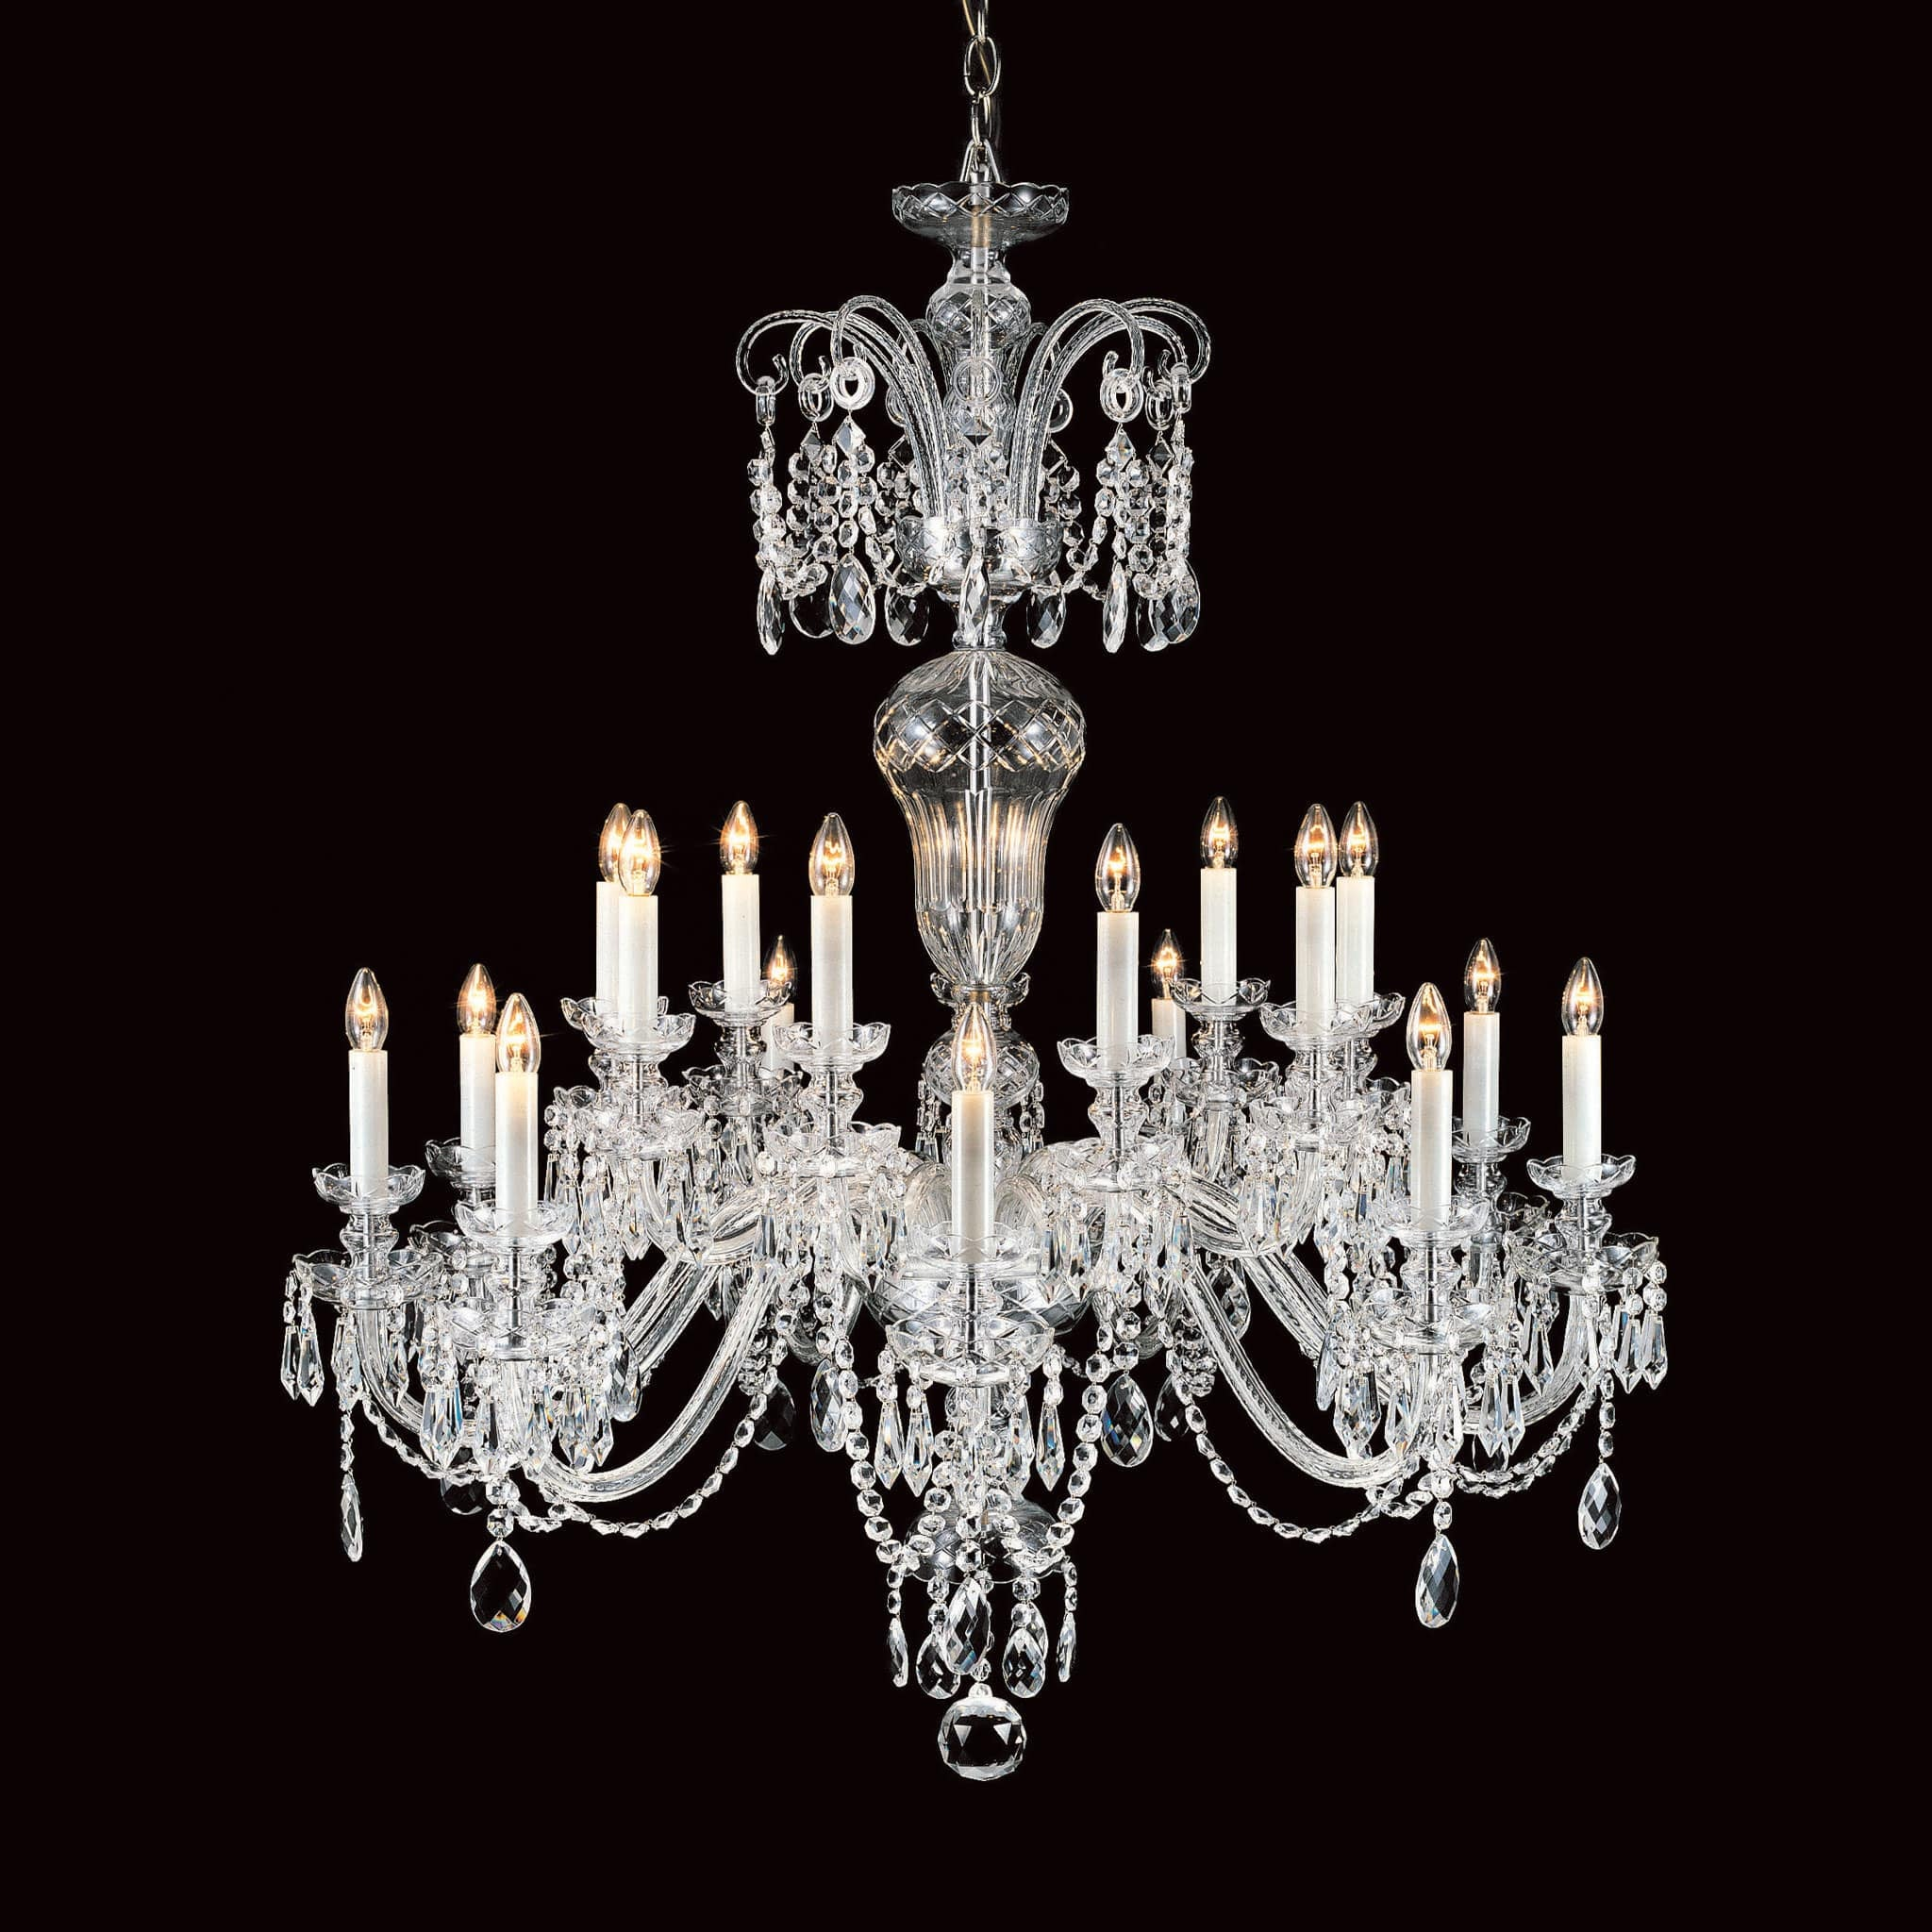 Impex Prague 18 Light Georgian Lead Crystal Chandelier CB125097/18 ...